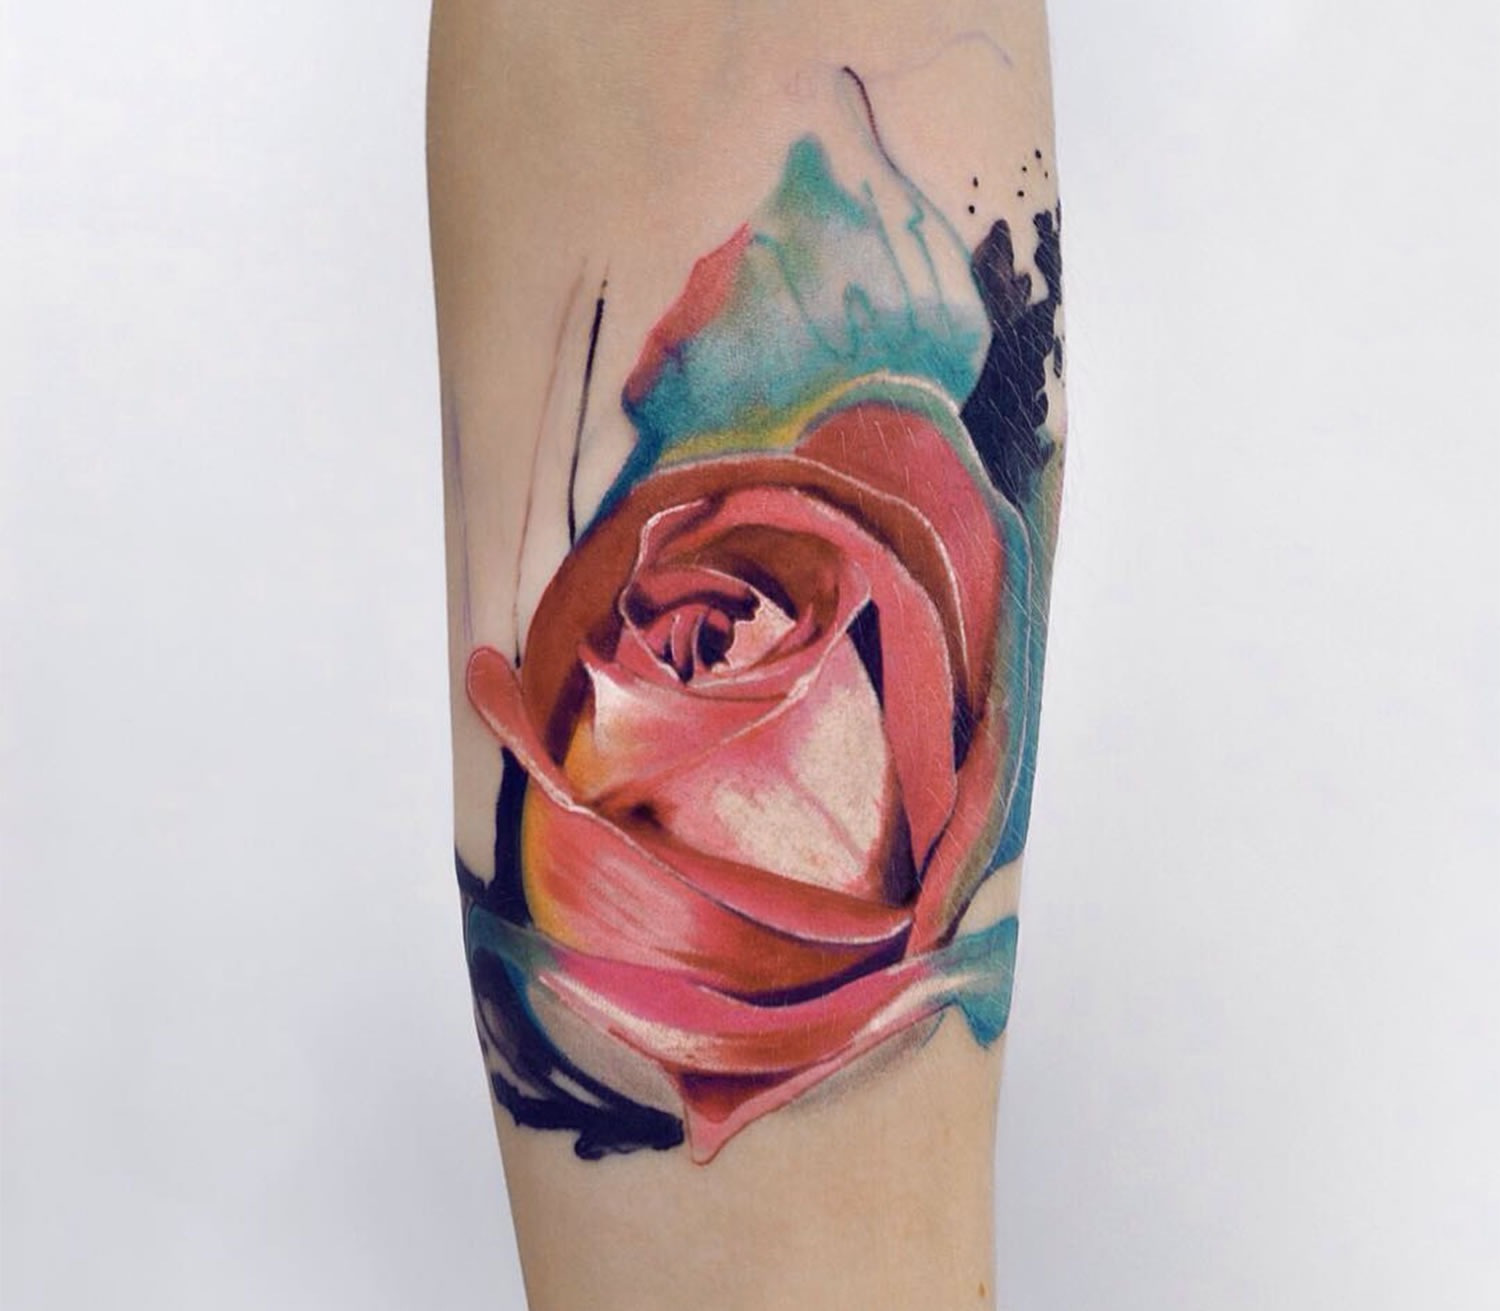 Painterly Tattoos by Aleksandra Katsan